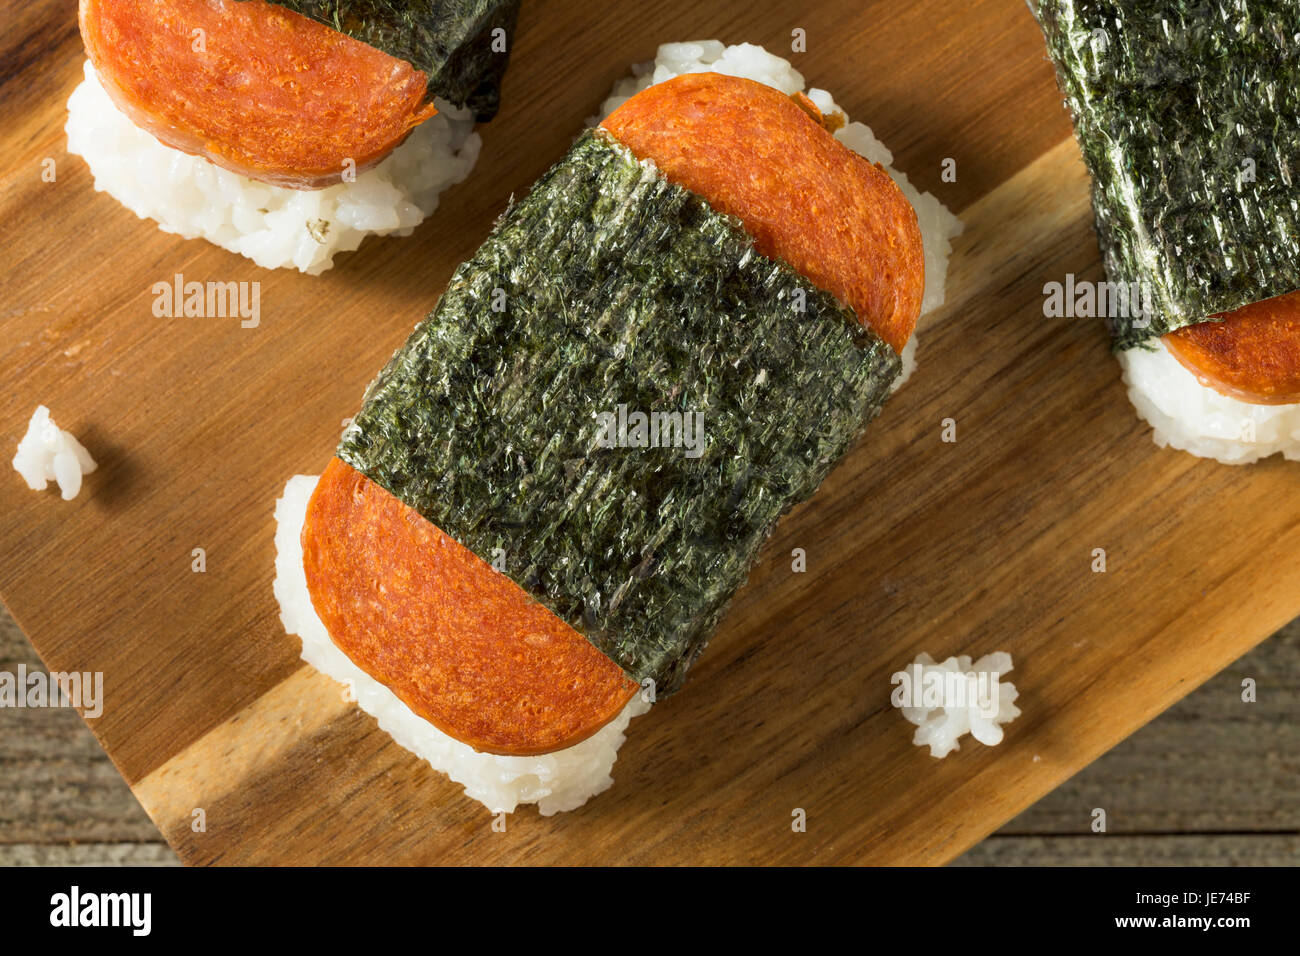 Homemade Healthy Musubi Rice and Meat Sandwich from Hawaii - Stock Image